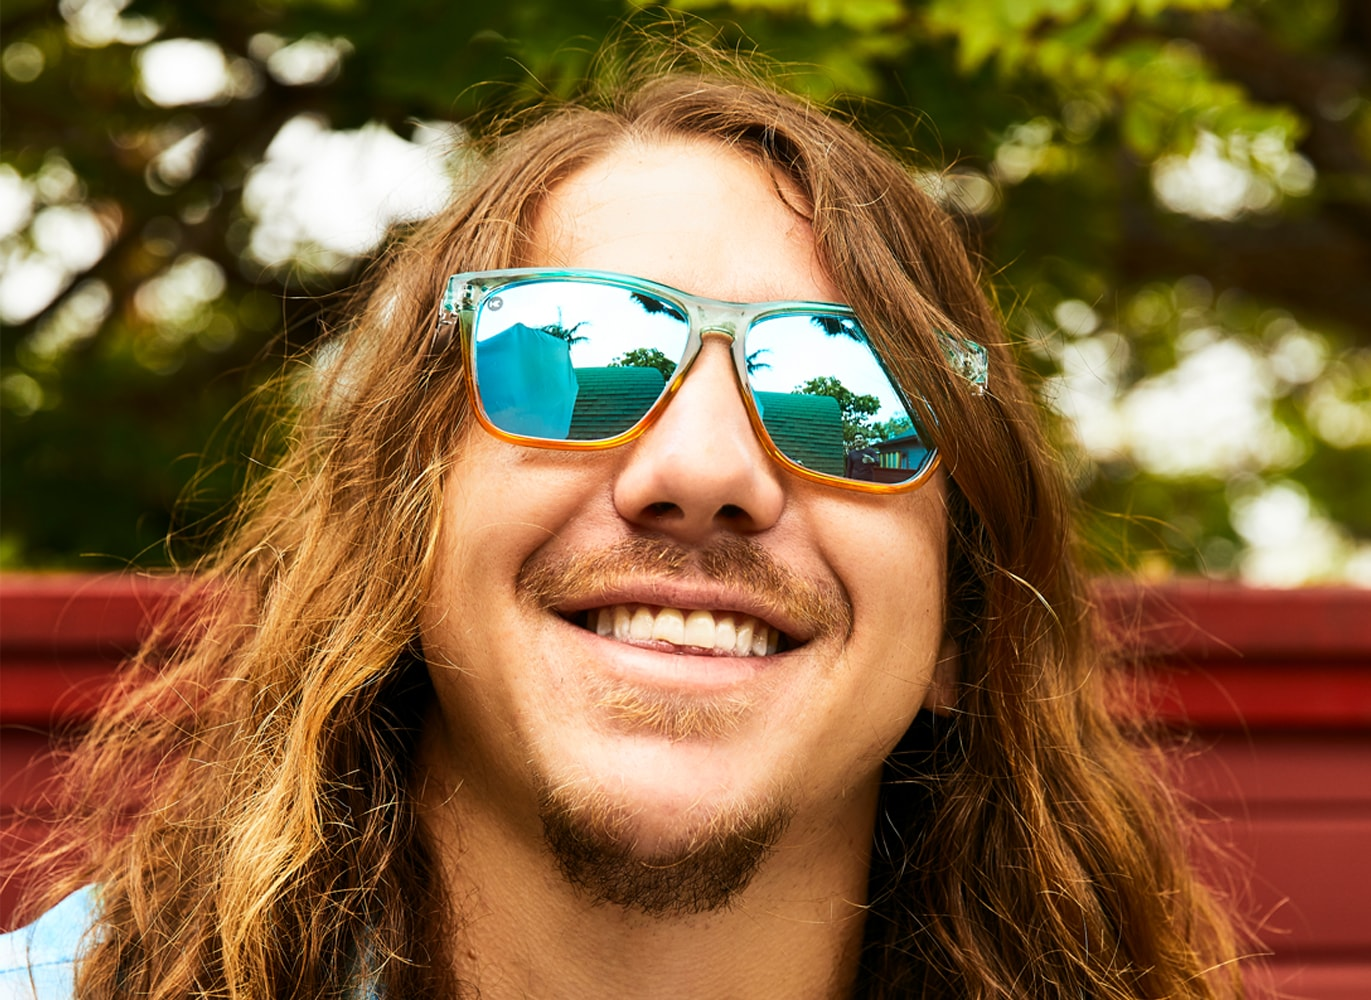 Mike Clevinger Beat the Heat sunglasses